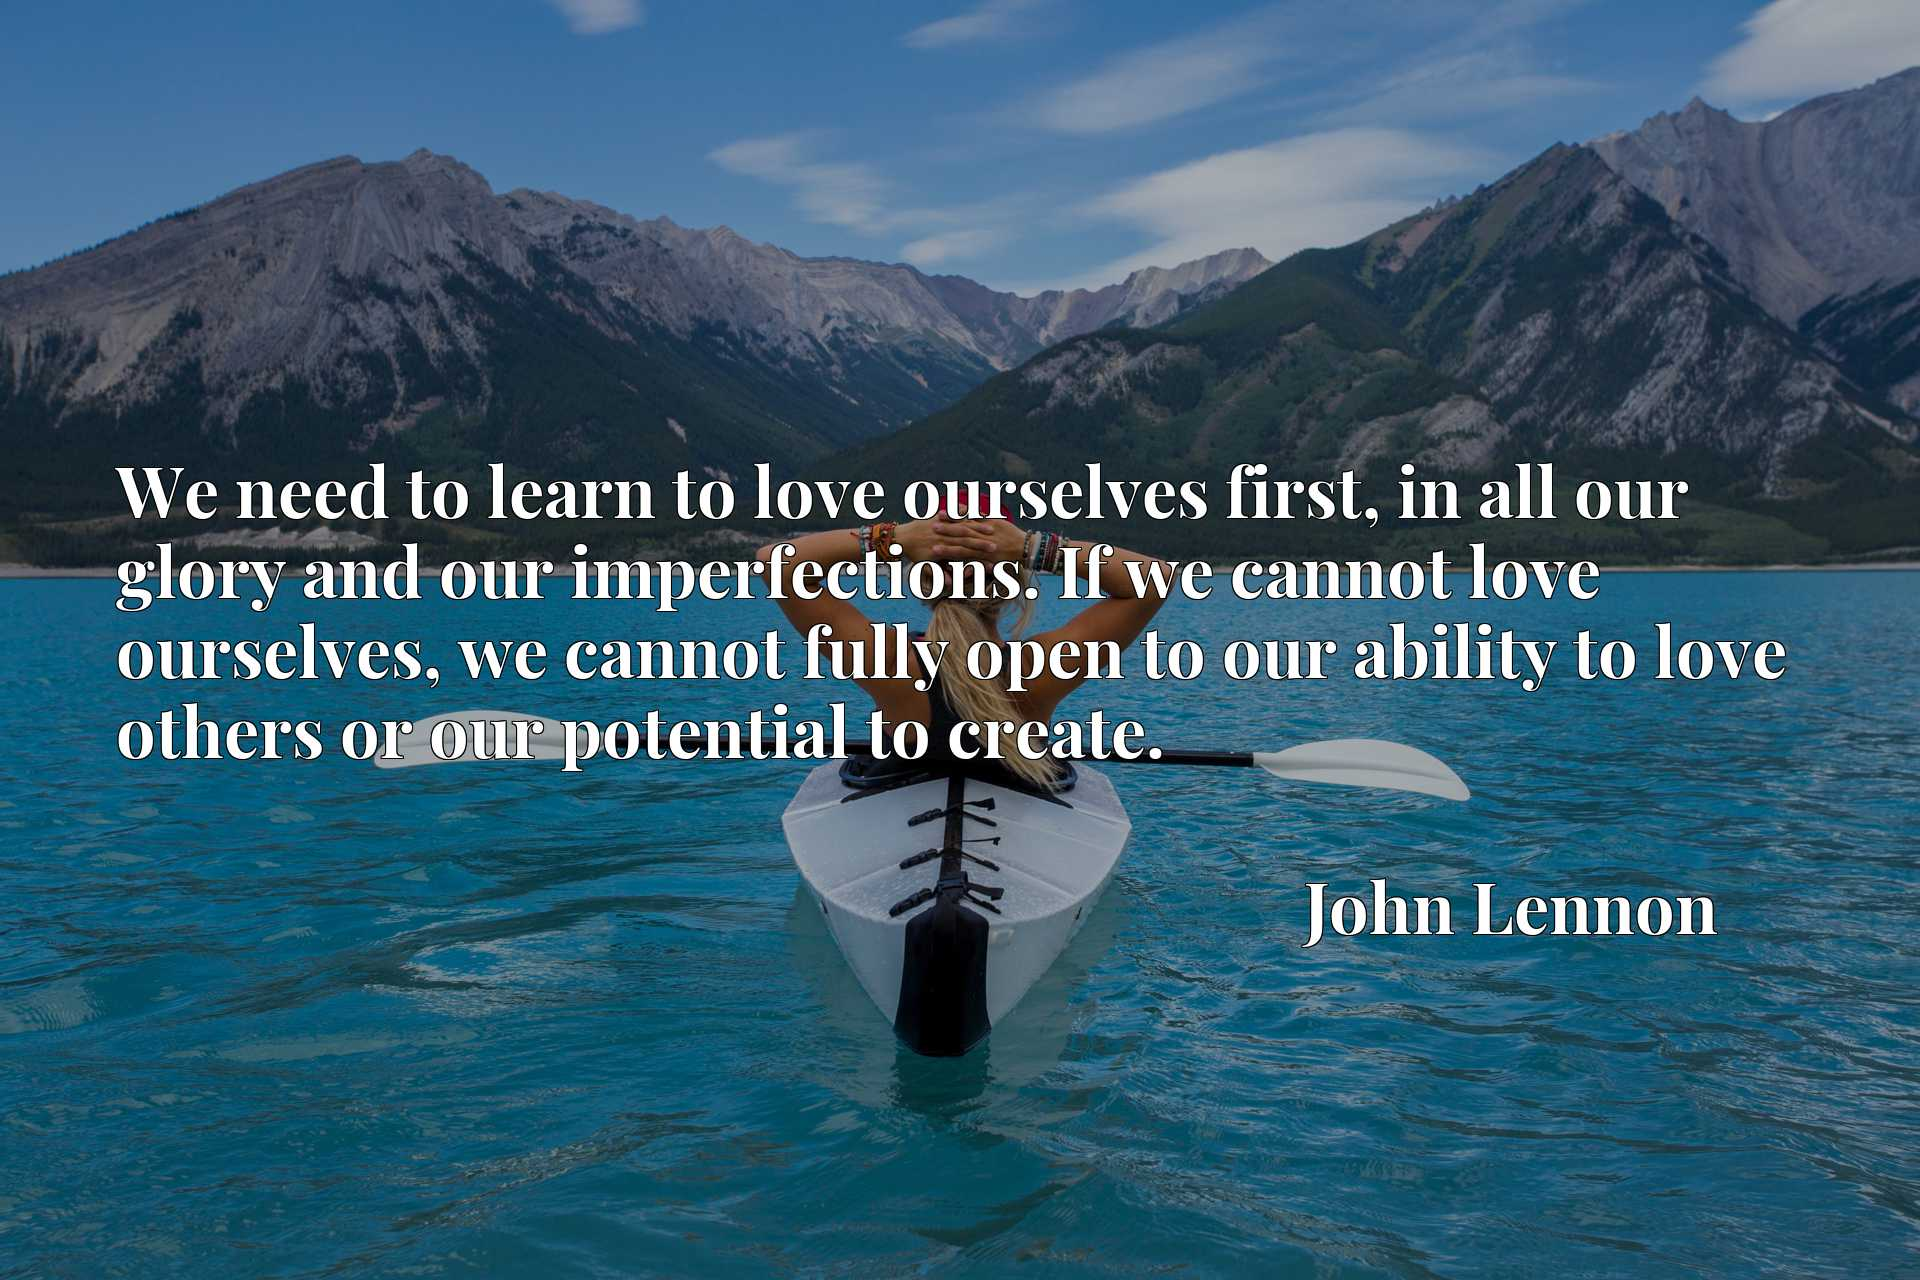 We need to learn to love ourselves first, in all our glory and our imperfections. If we cannot love ourselves, we cannot fully open to our ability to love others or our potential to create.